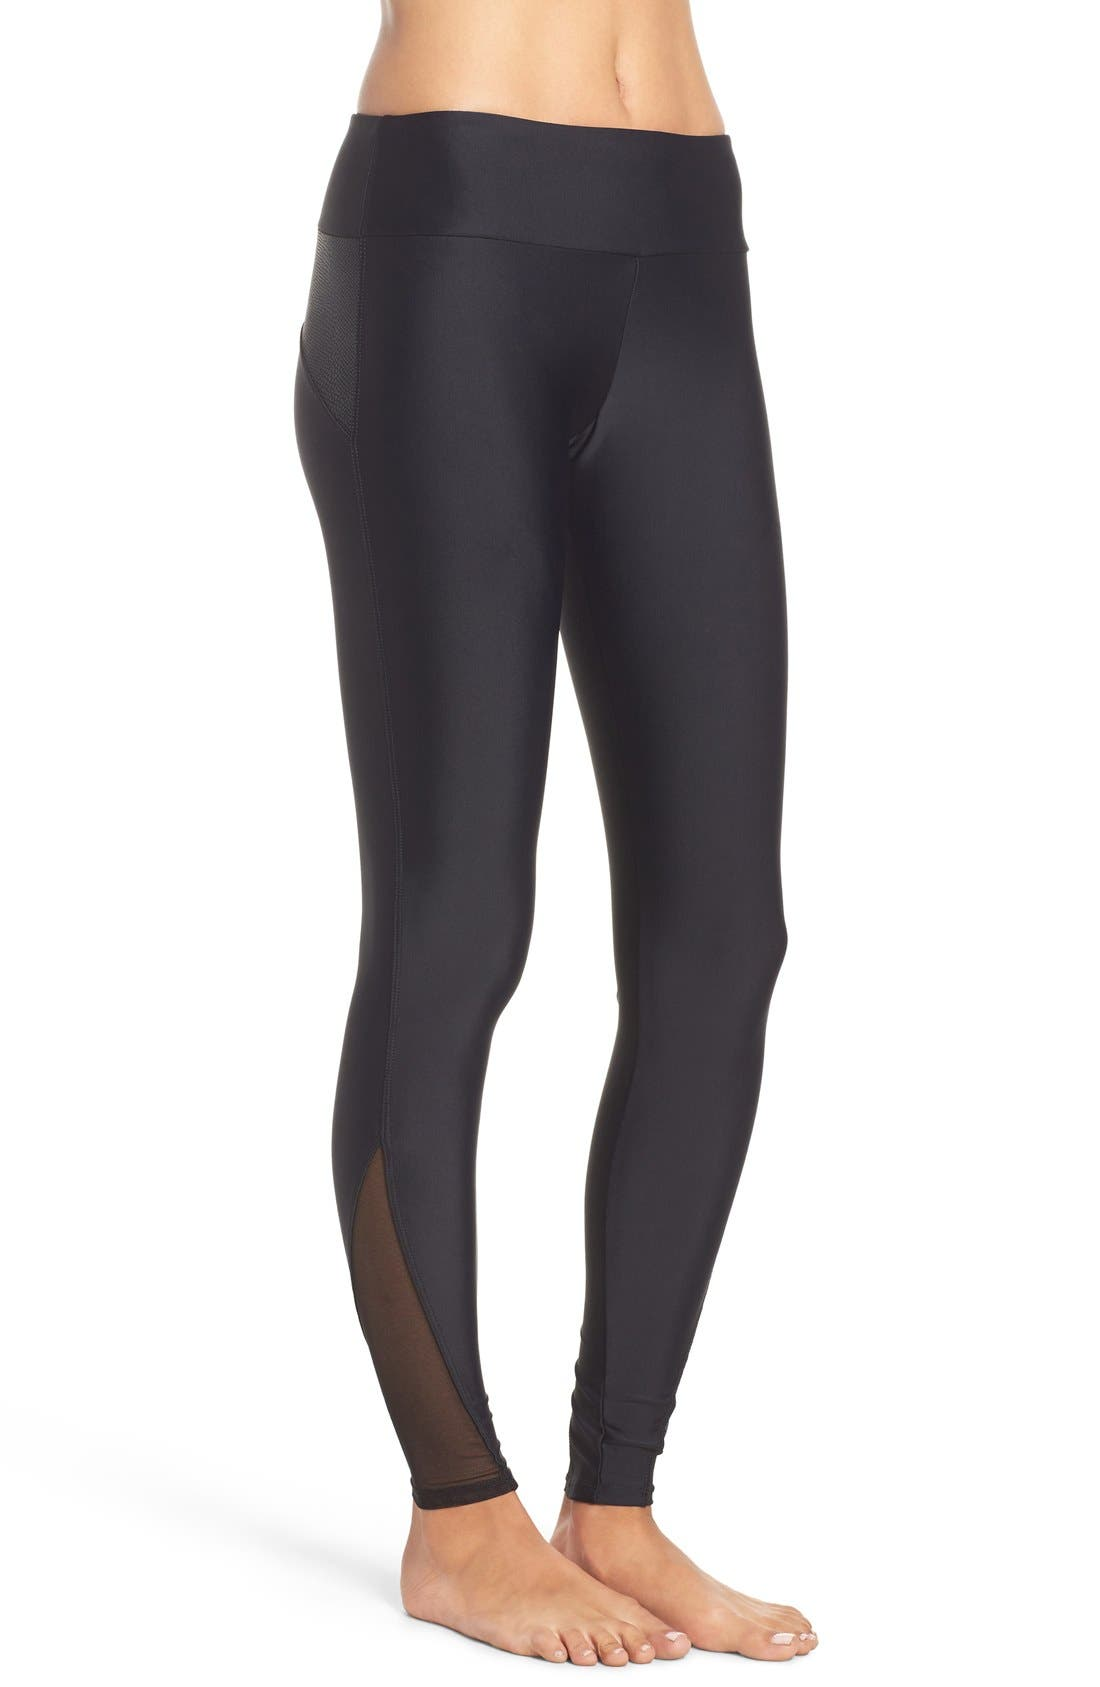 Shaper Leggings,                             Alternate thumbnail 8, color,                             001